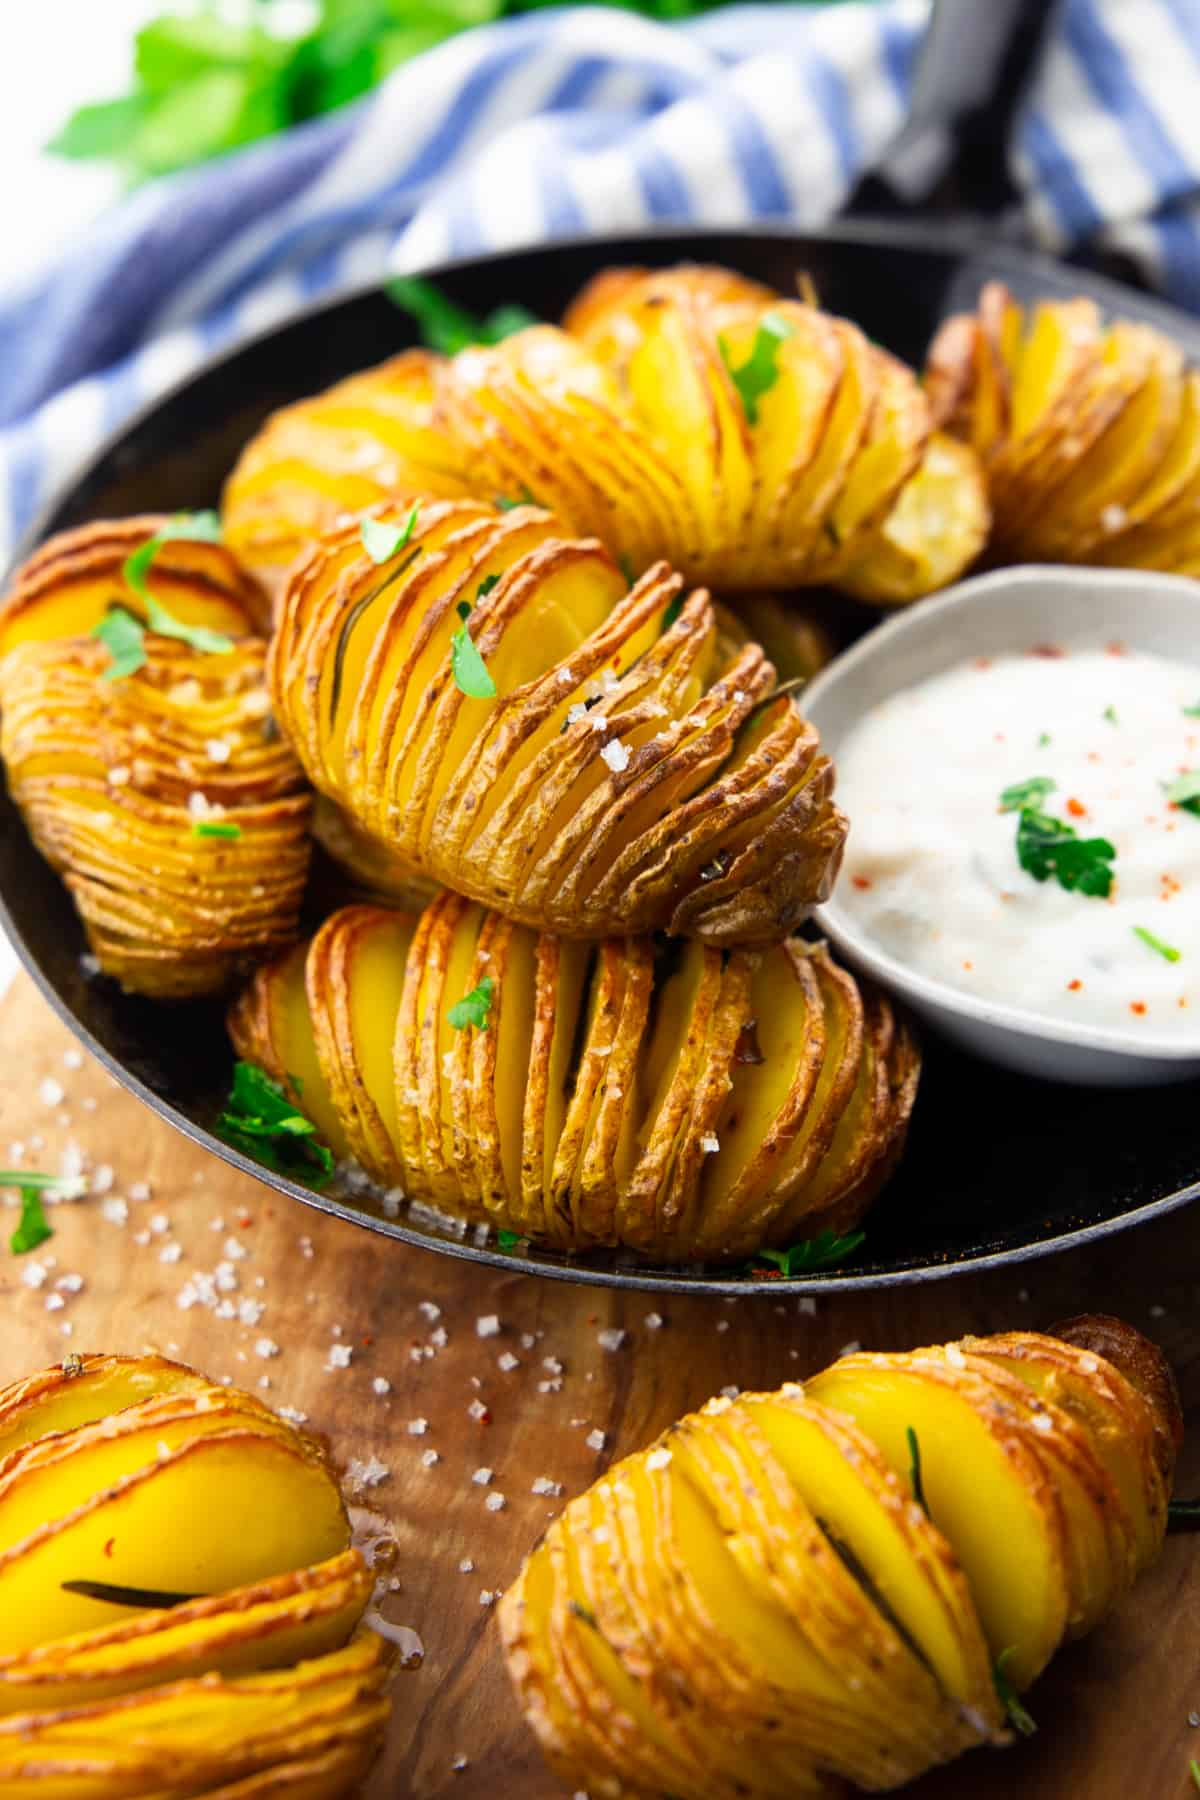 Hasselback Potatoes in a black pan with a small bowl of sour cream on the side